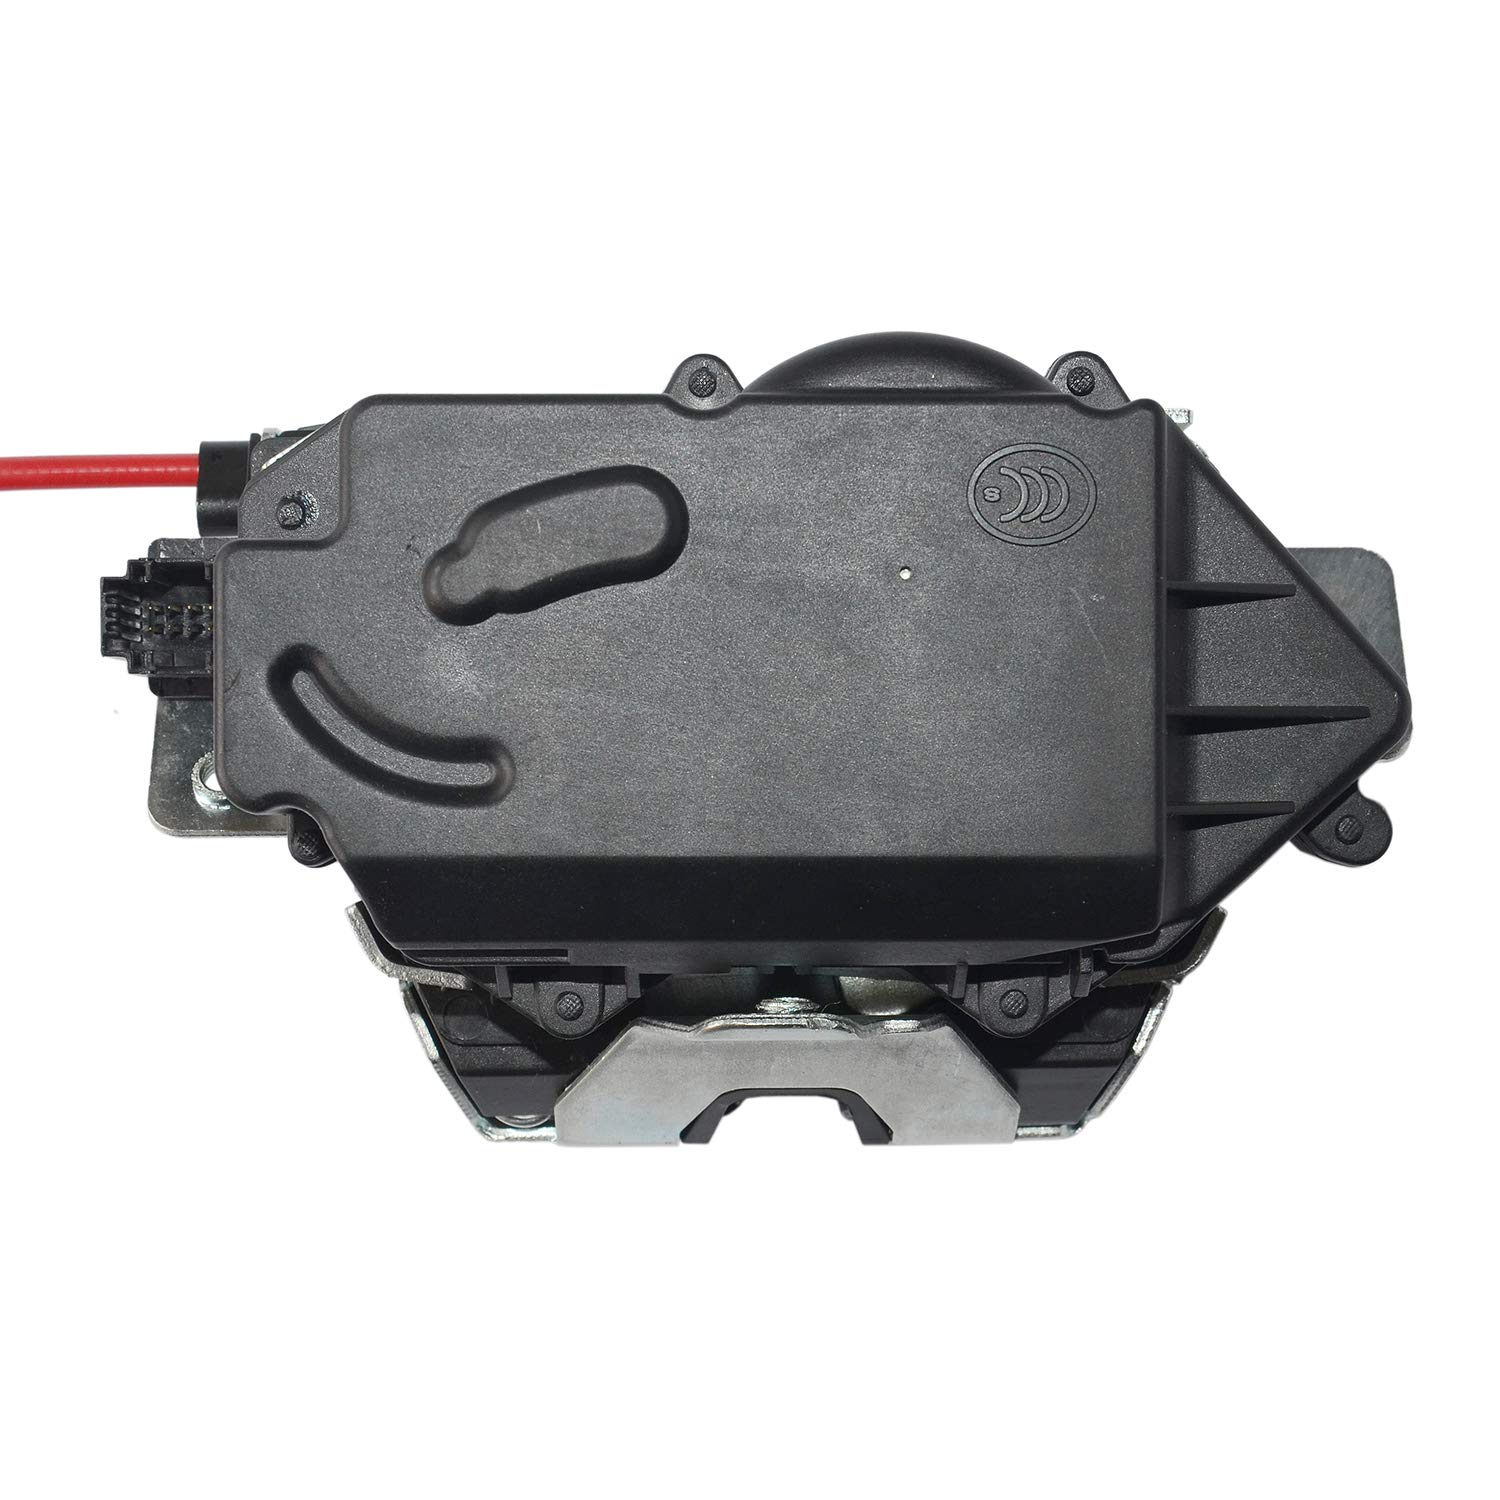 Tailgate Hatch Lock Latch with Actuator for Mercedes Benz ML350 ML550 E350 1647400635 164 740 05 00